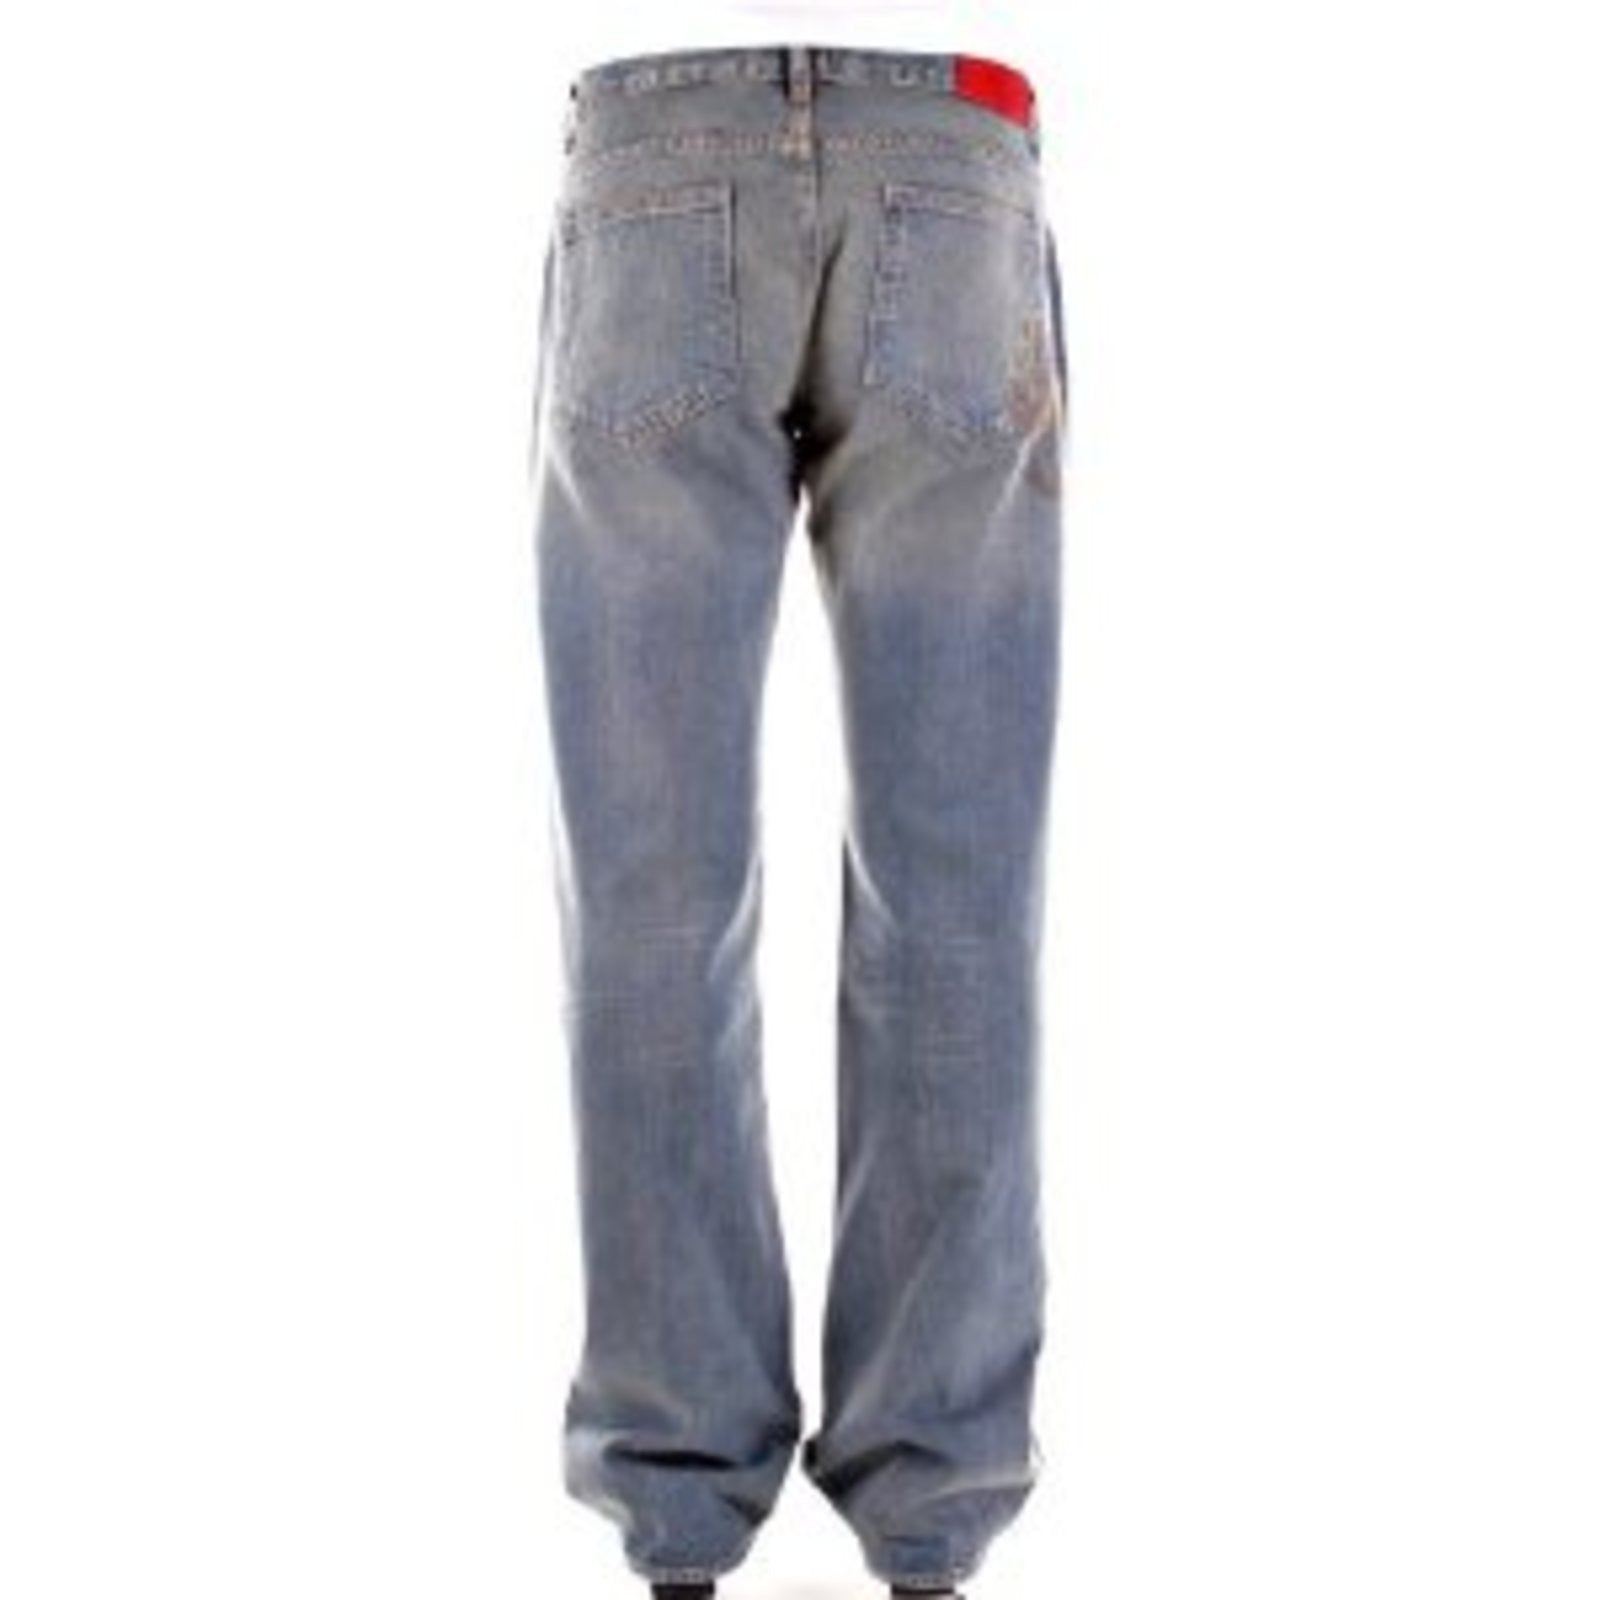 stonewashed slim fit jeans - Blue Versace Jeans Couture rKjXFU